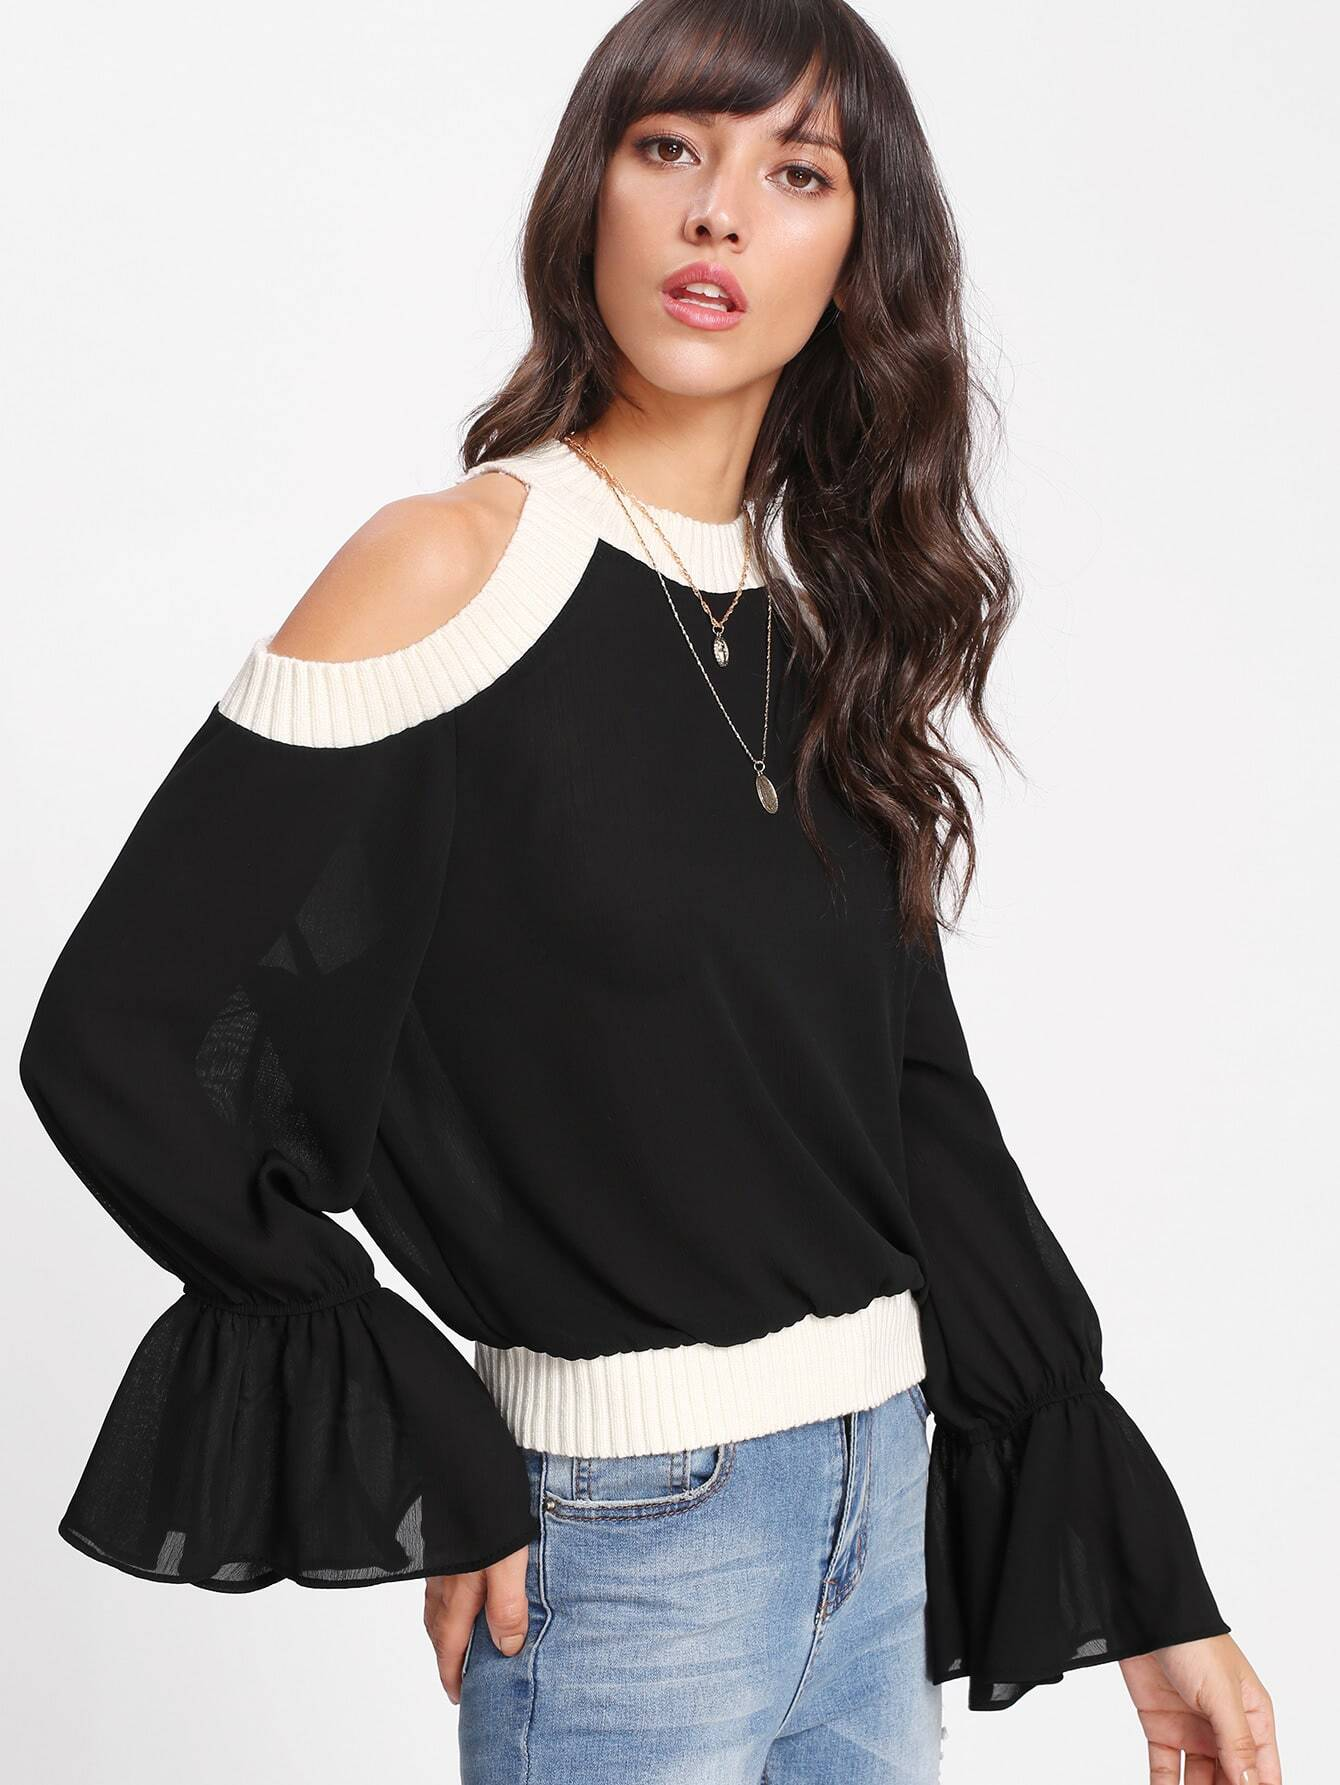 Contrast Ribbed Trim Open Shoulder Top blouse171117001